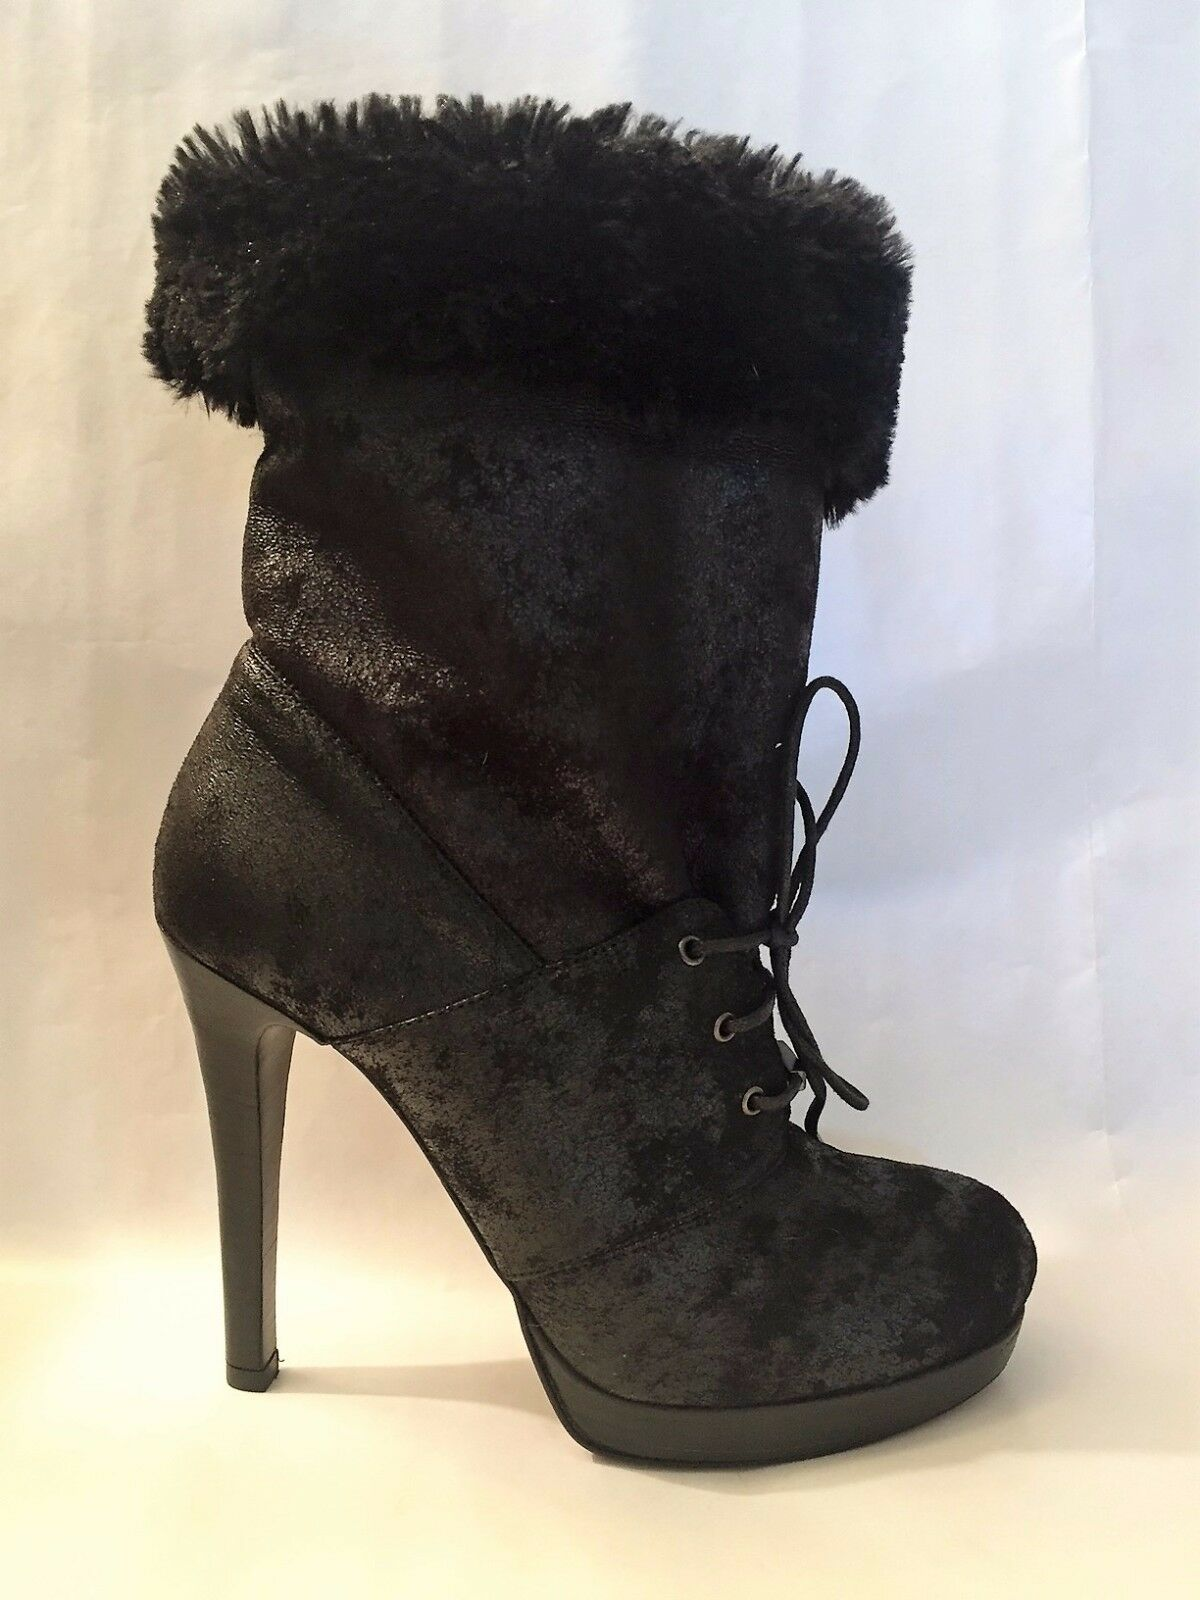 BOTTINES PINKO SUEDE CUIR FOURRURE NEUF TALON PLATEAU SEXY SOLDE OUT